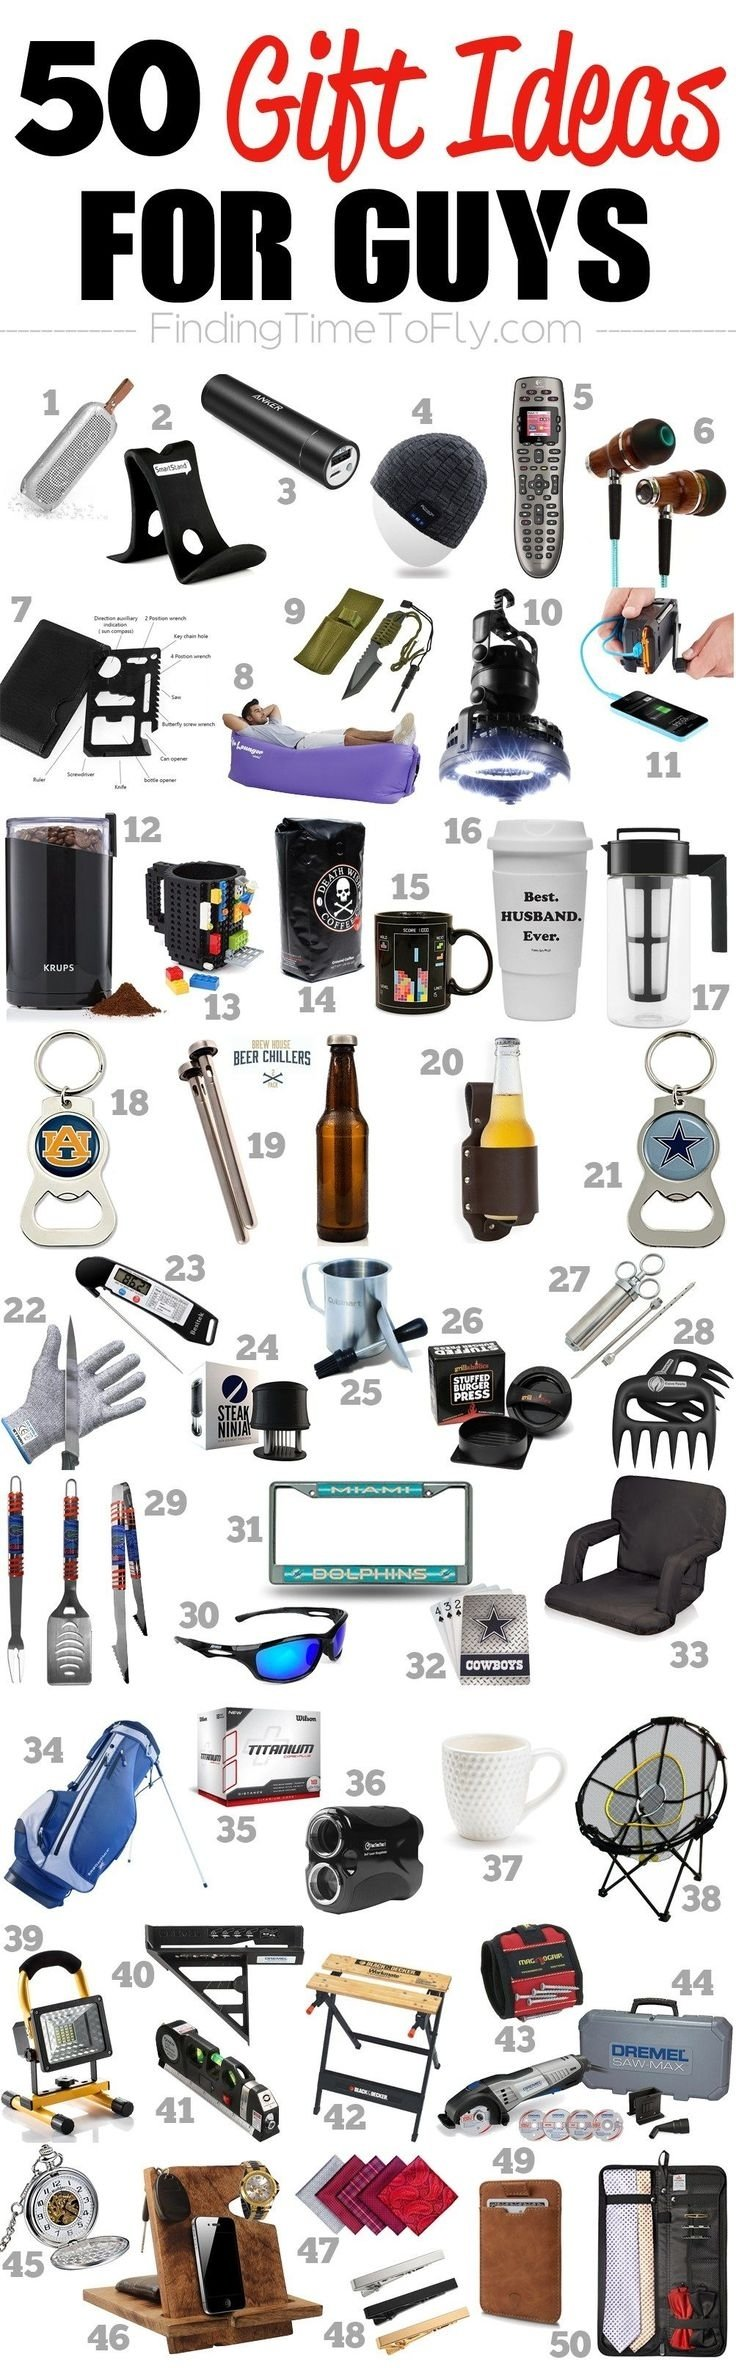 10 Spectacular Gift Ideas For College Boys 394 best college student gift ideas images on pinterest college 1 2020